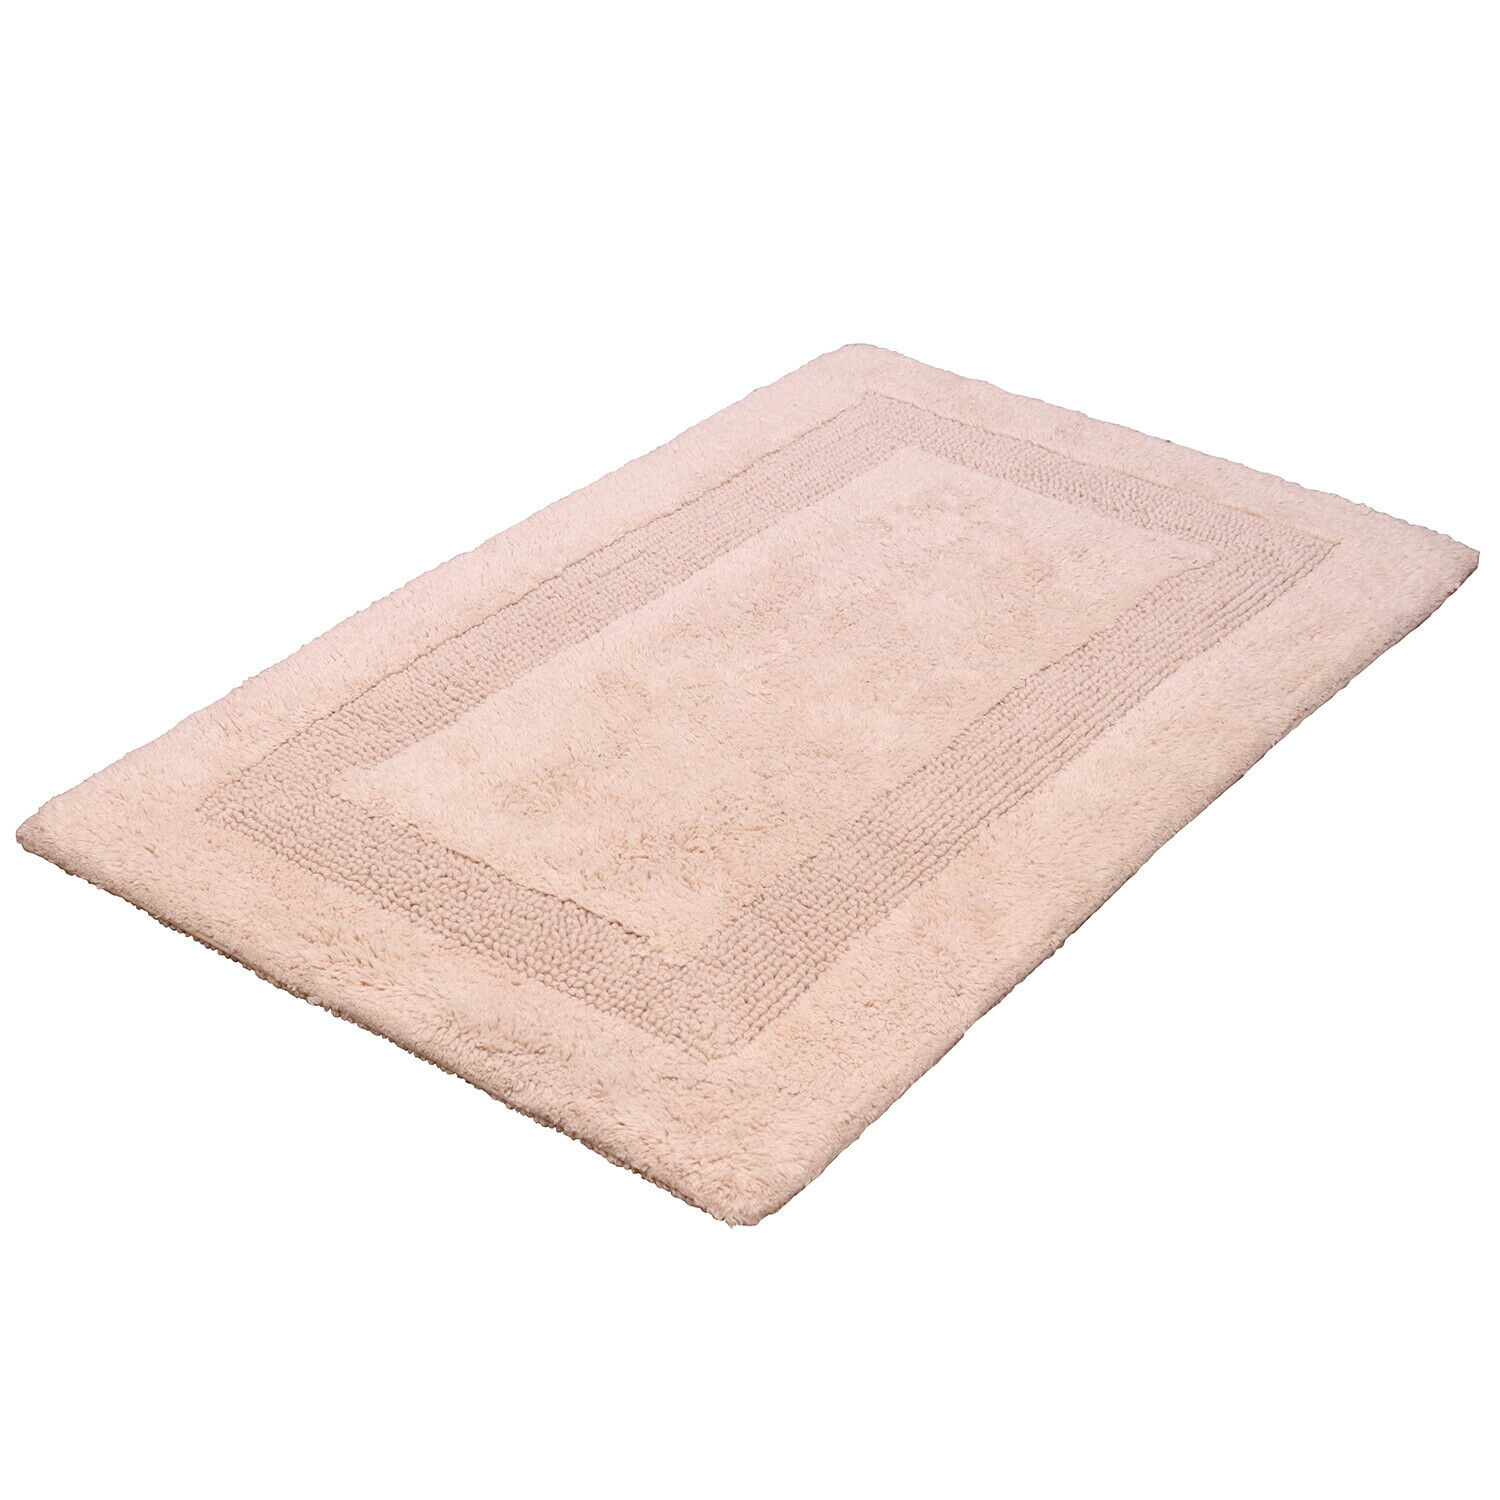 arkwright s provence bath rug heavy weight 21 x 34 100 cotton absorbent